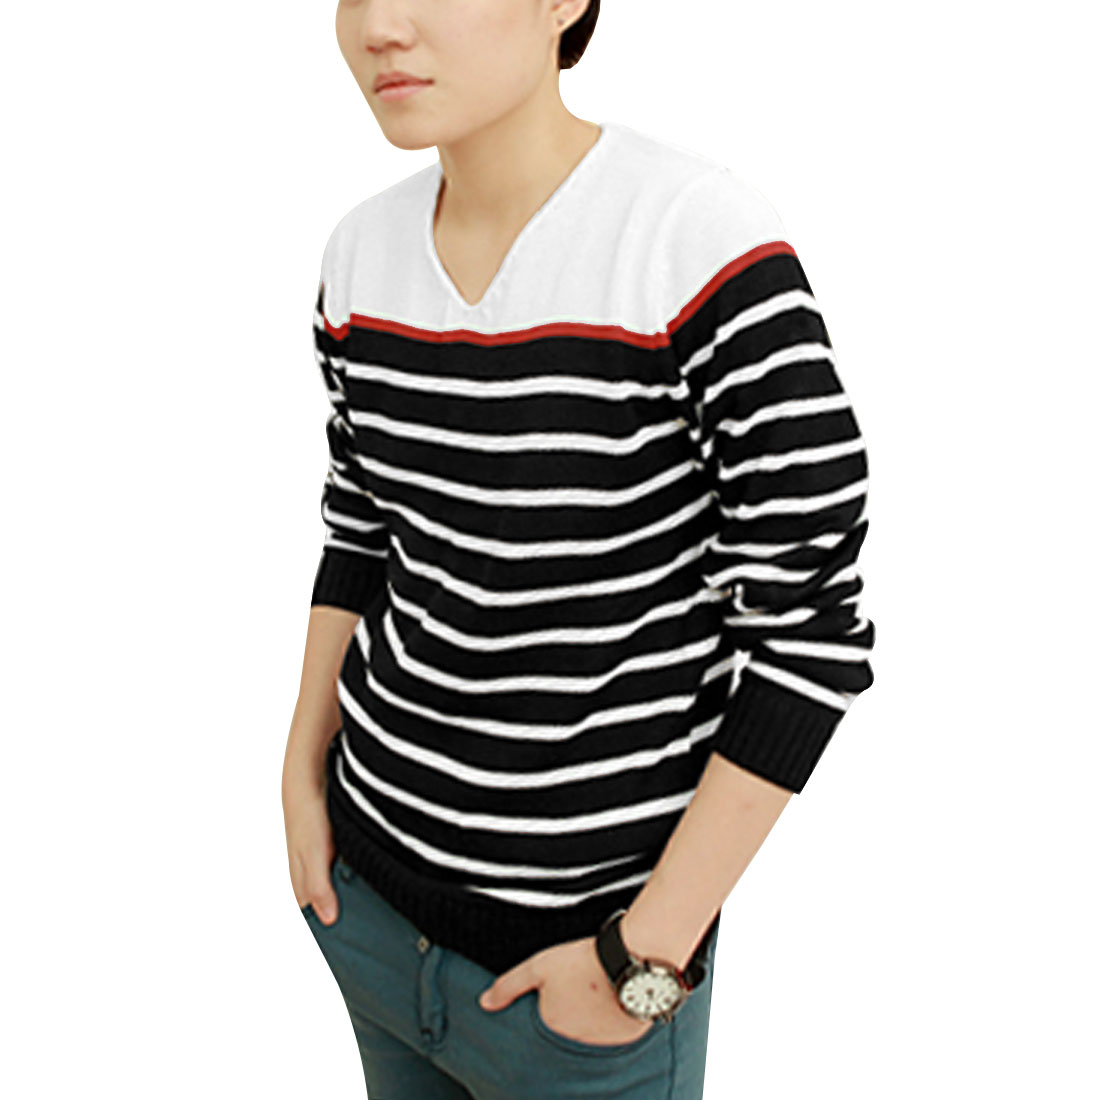 Men Texture V Neck Contrast Color Black White Stripe Long Sleeve Knit Shirt S